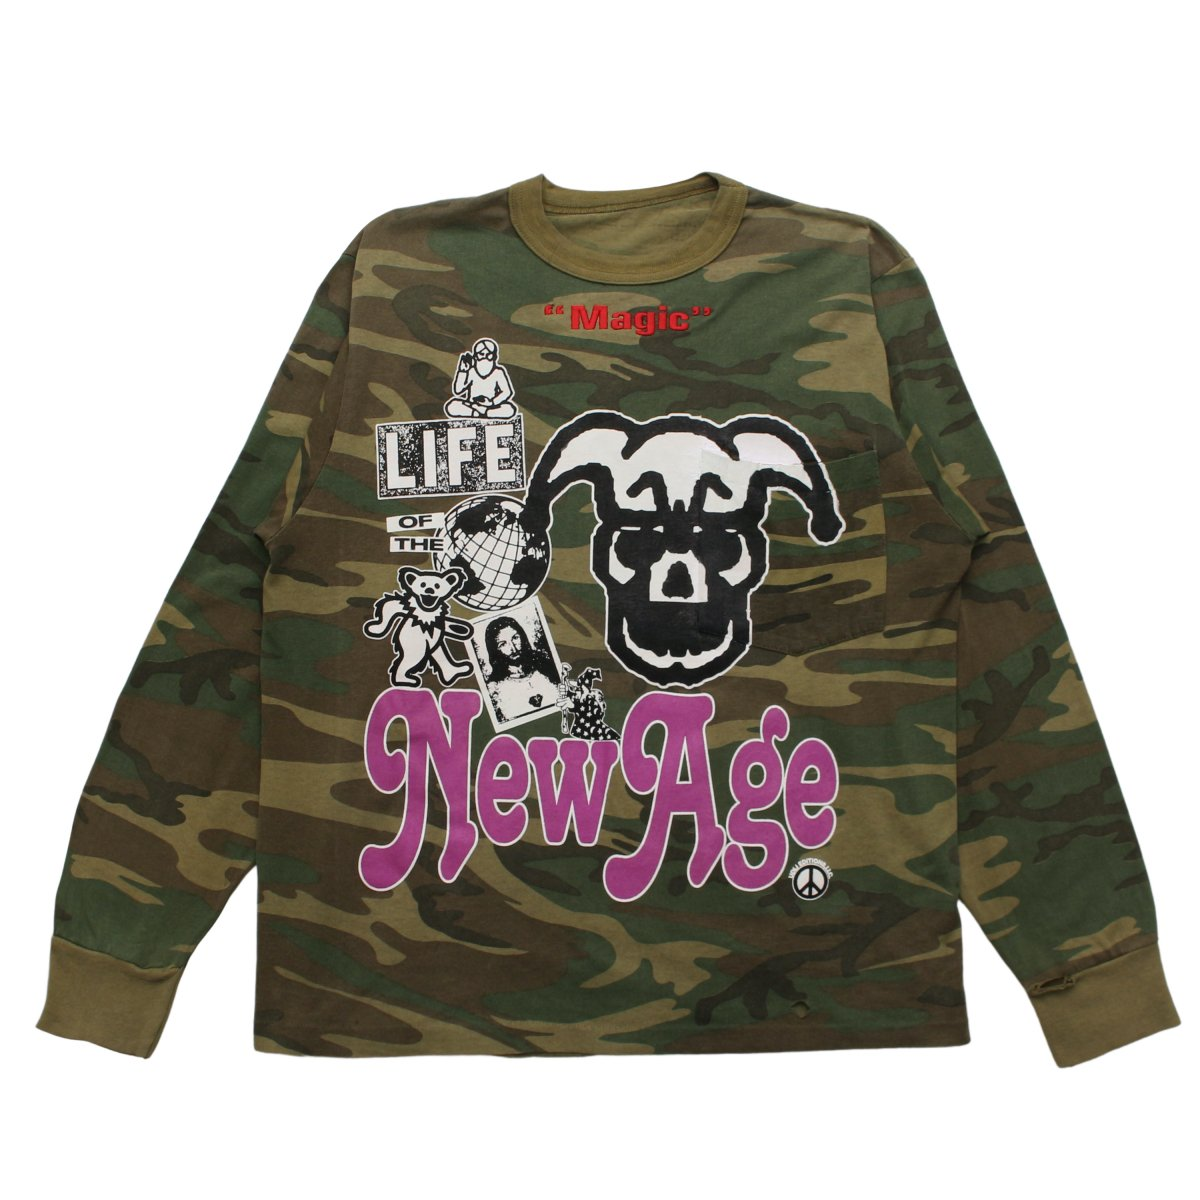 MAGIC LIFE OF THE NEW AGE SHIRT  #06